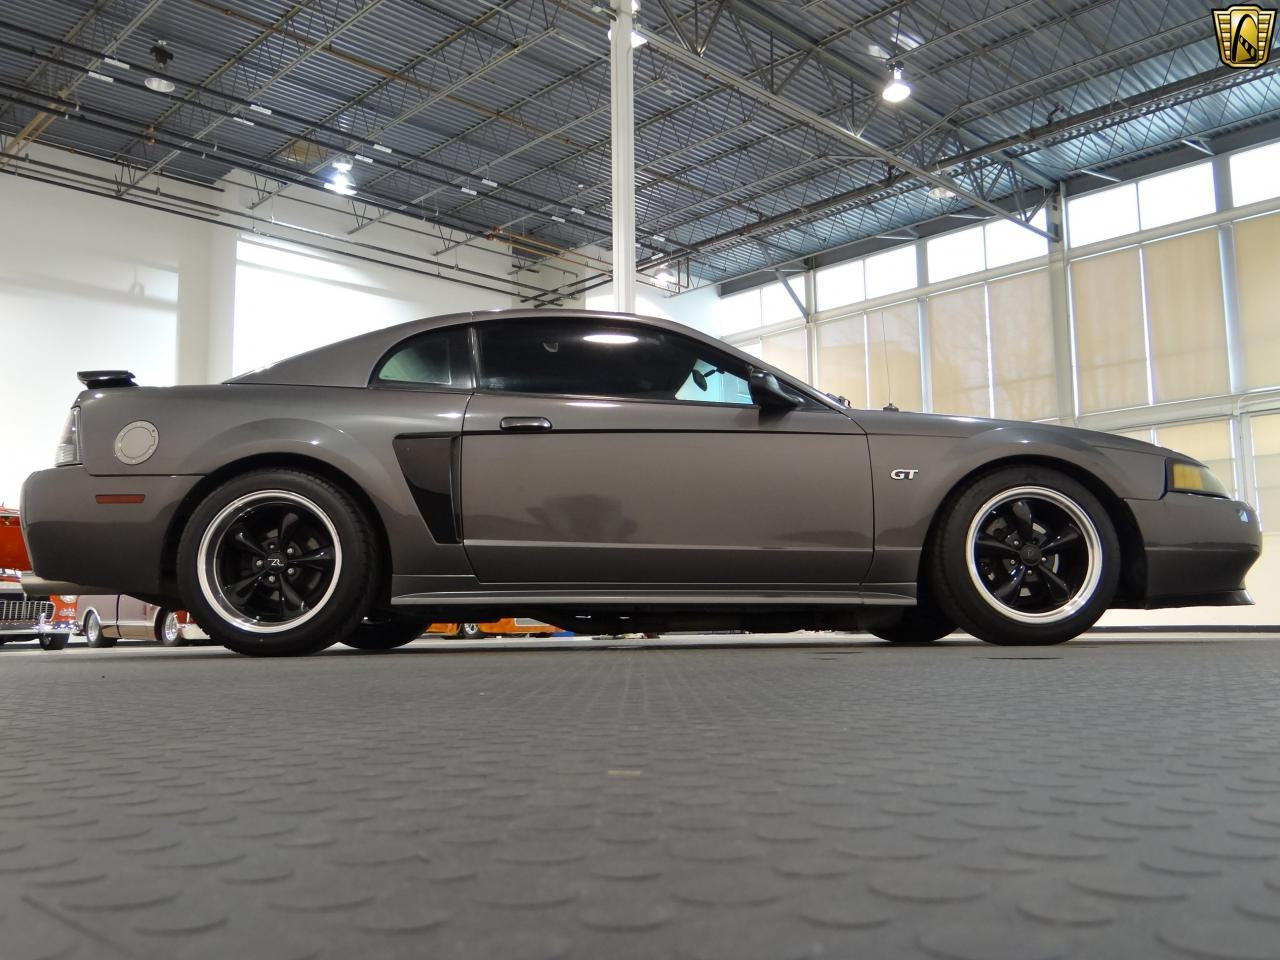 Large Picture of '03 Mustang - $11,995.00 Offered by Gateway Classic Cars - Indianapolis - KE78